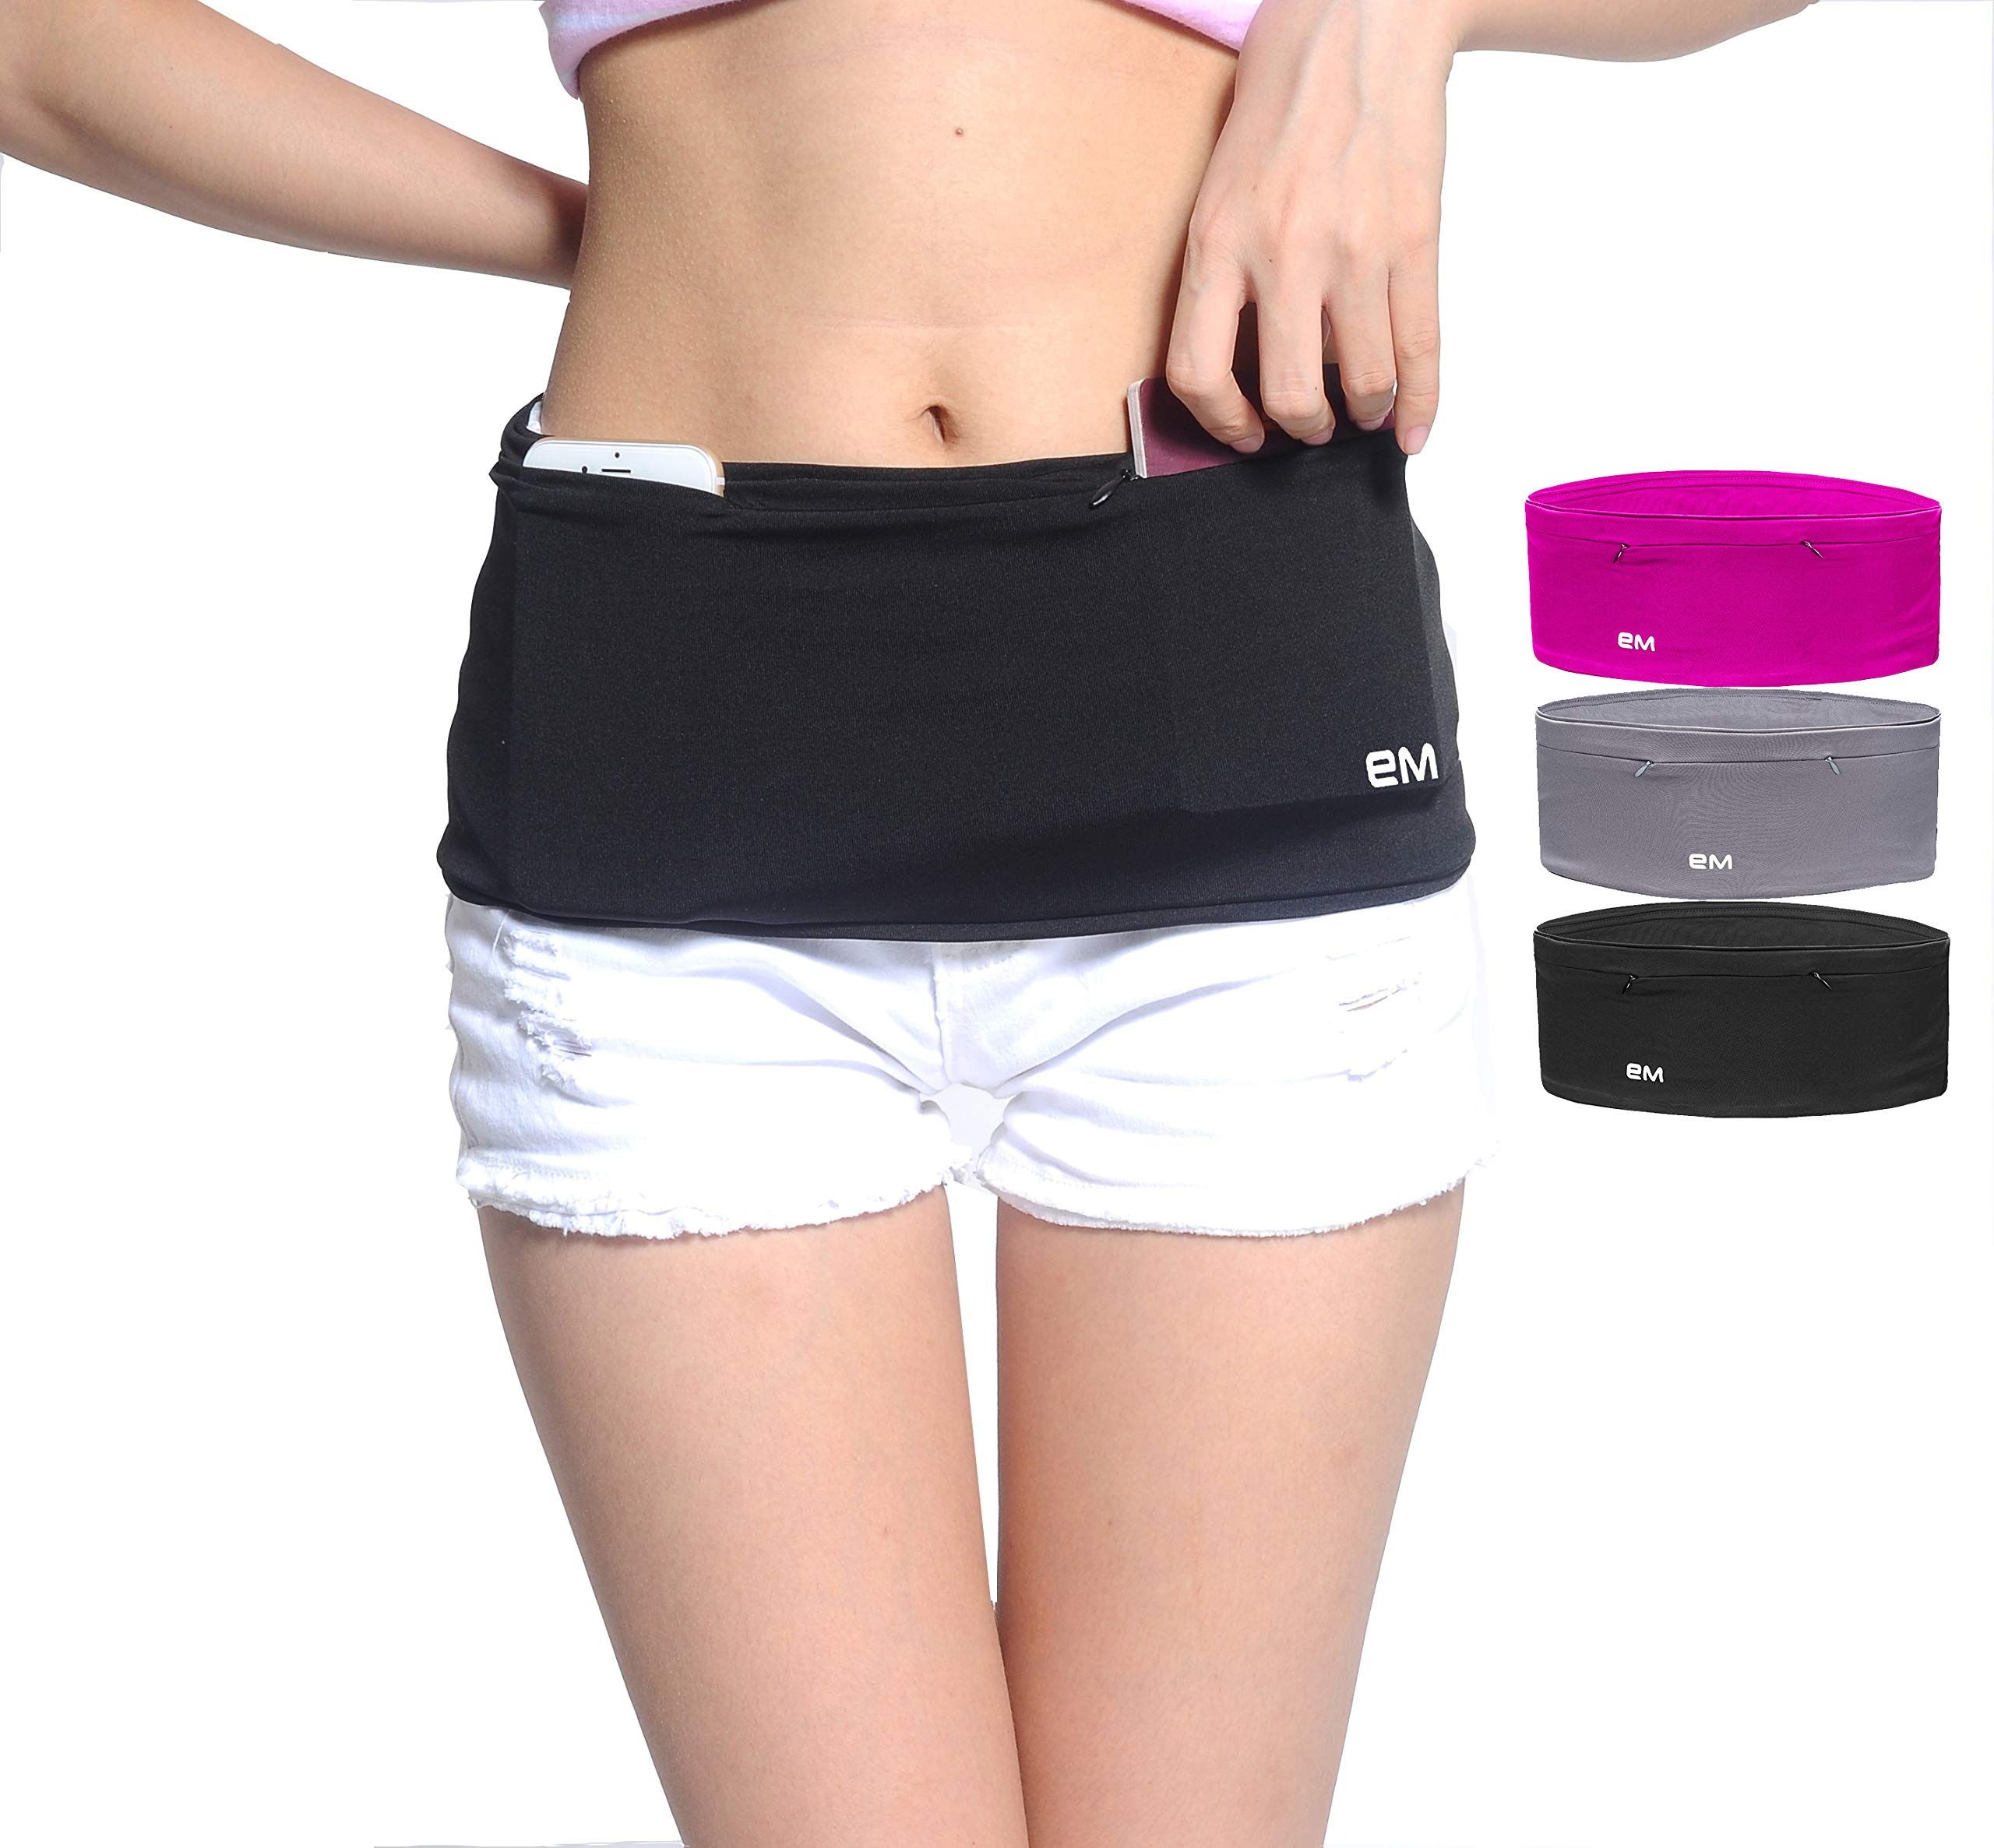 EAZYMATE Fashion Running Belt - Travel Money Belt with Zipper Pockets Fit All Smartphones and Passport (Two Zip Pockets Black, XX-Large)